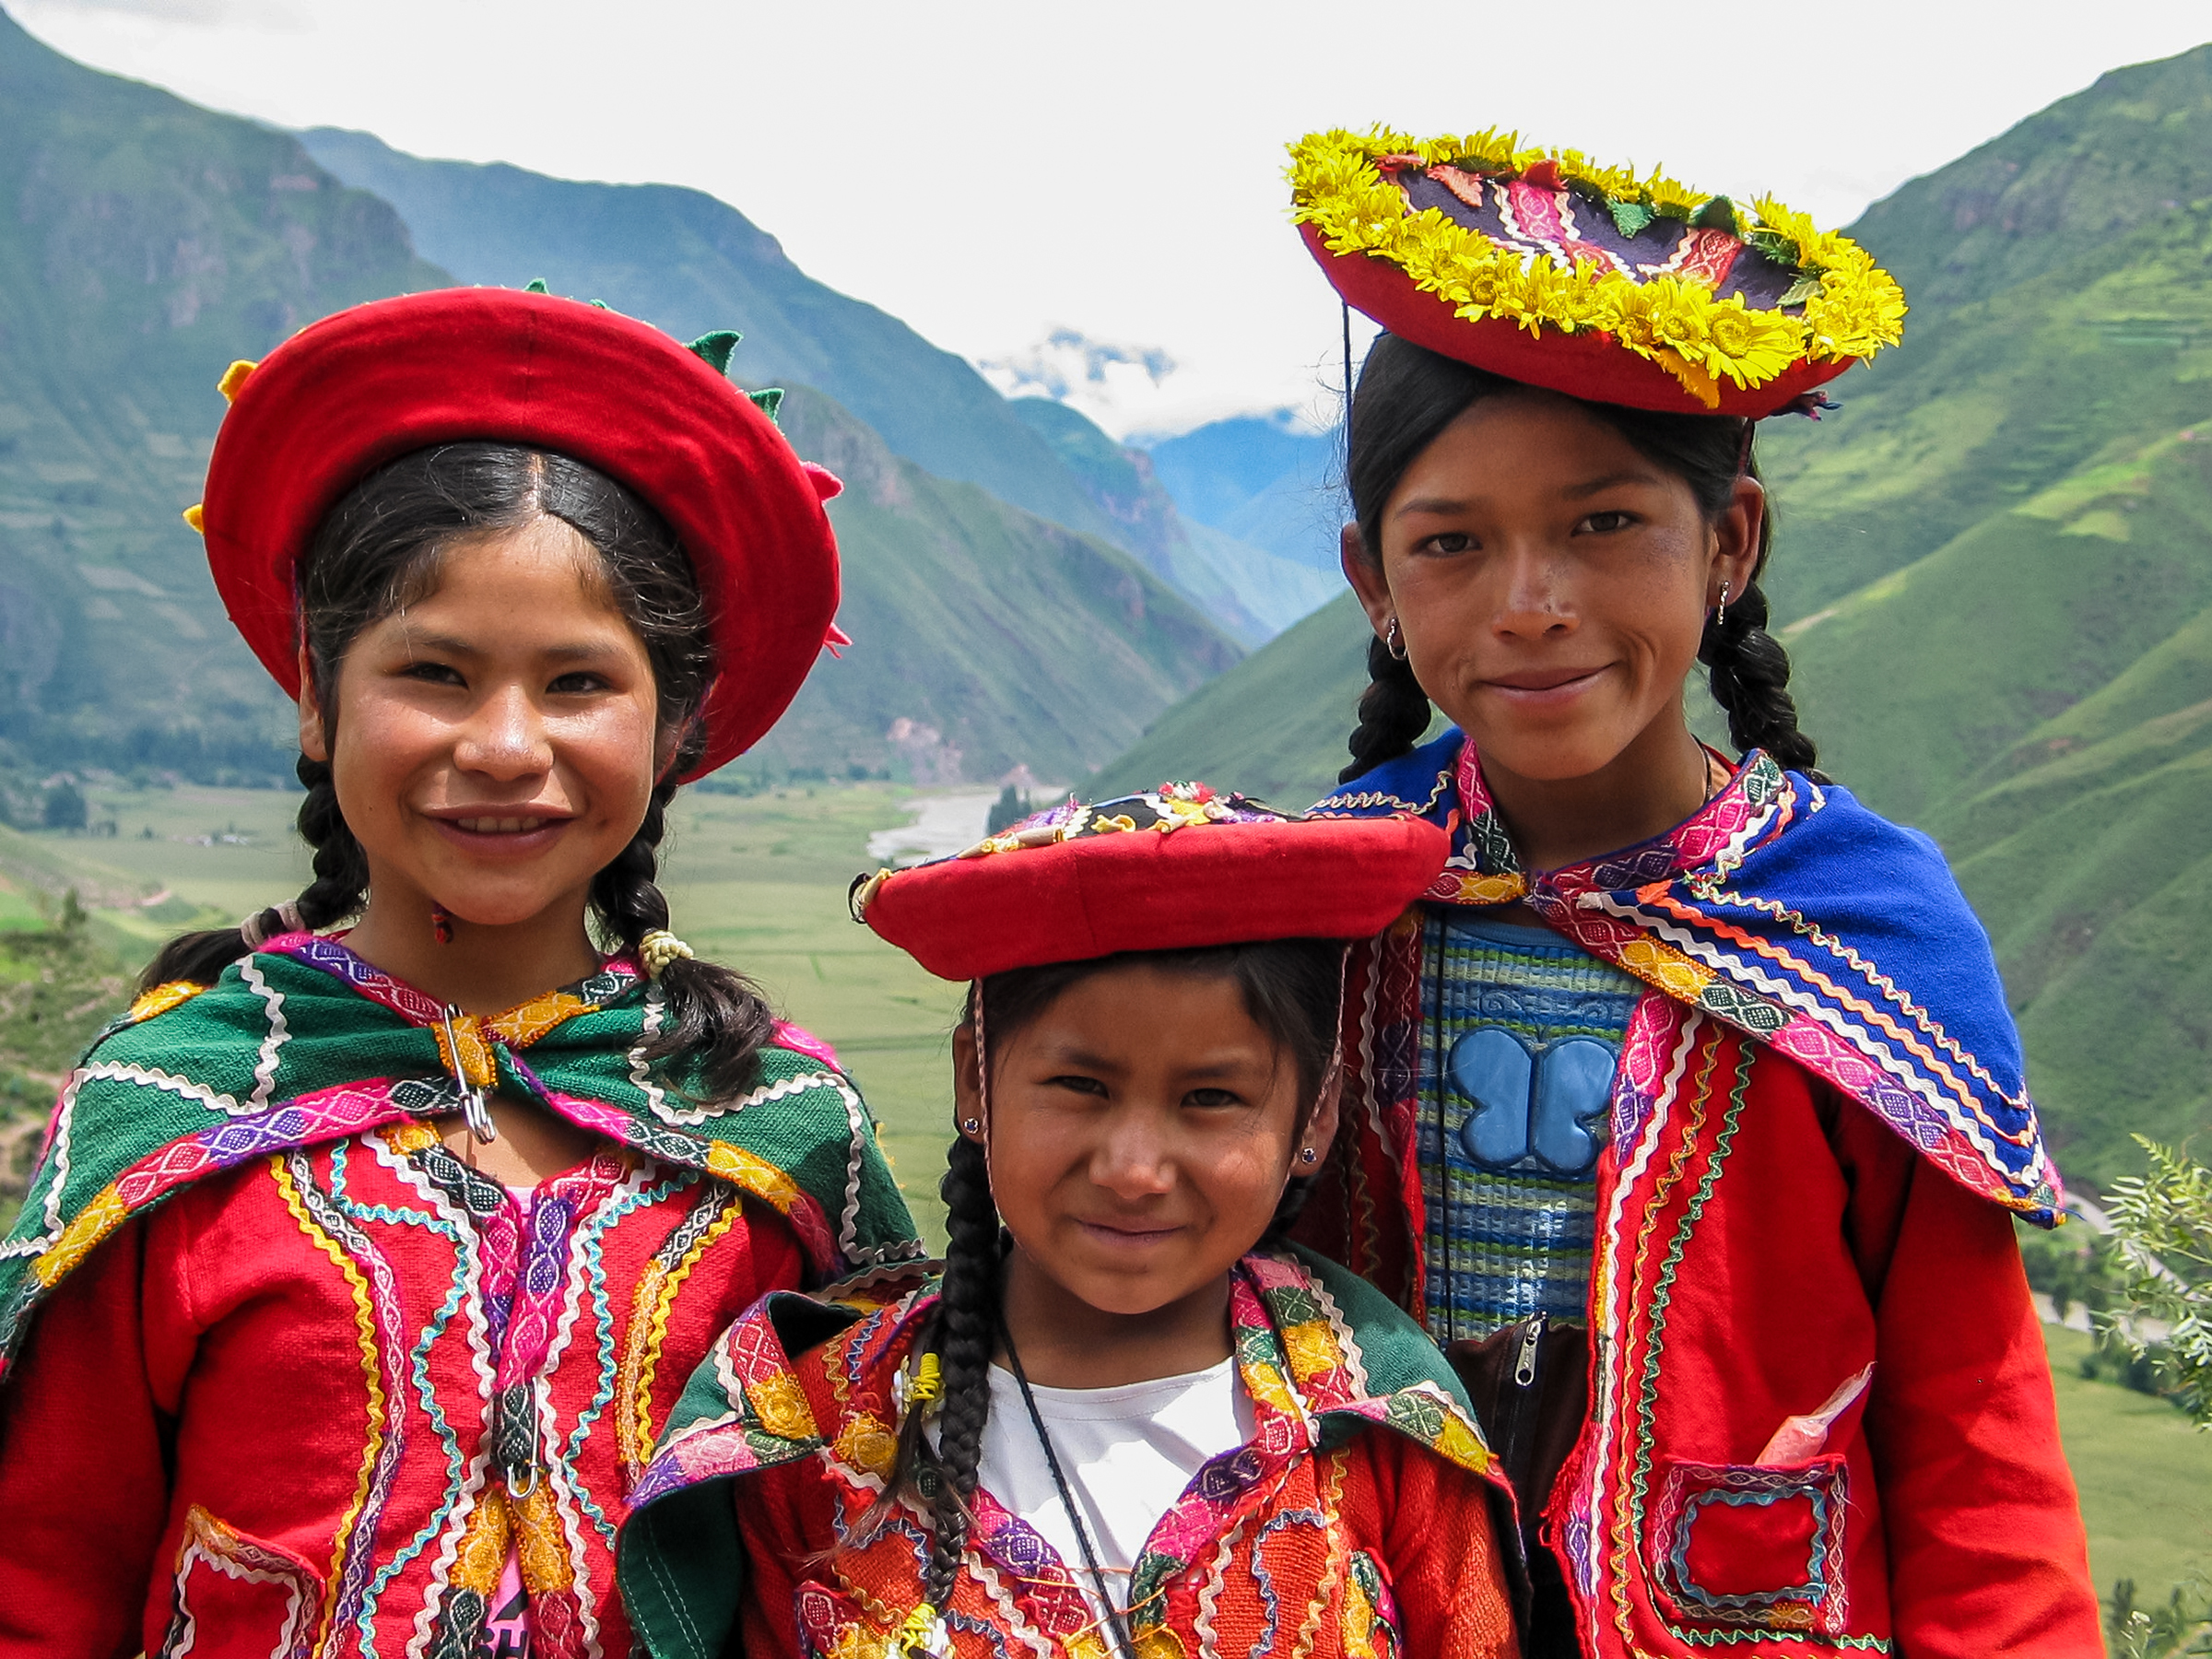 an analysis of the native inhabitants lives in chile Chile's population is estimated to have grown in 2018 to 1820 million  at the  2002 census, it was confirmed that there were 15,116,435 people living in south   while 25% answered mestizo and 8% answered indigenous.